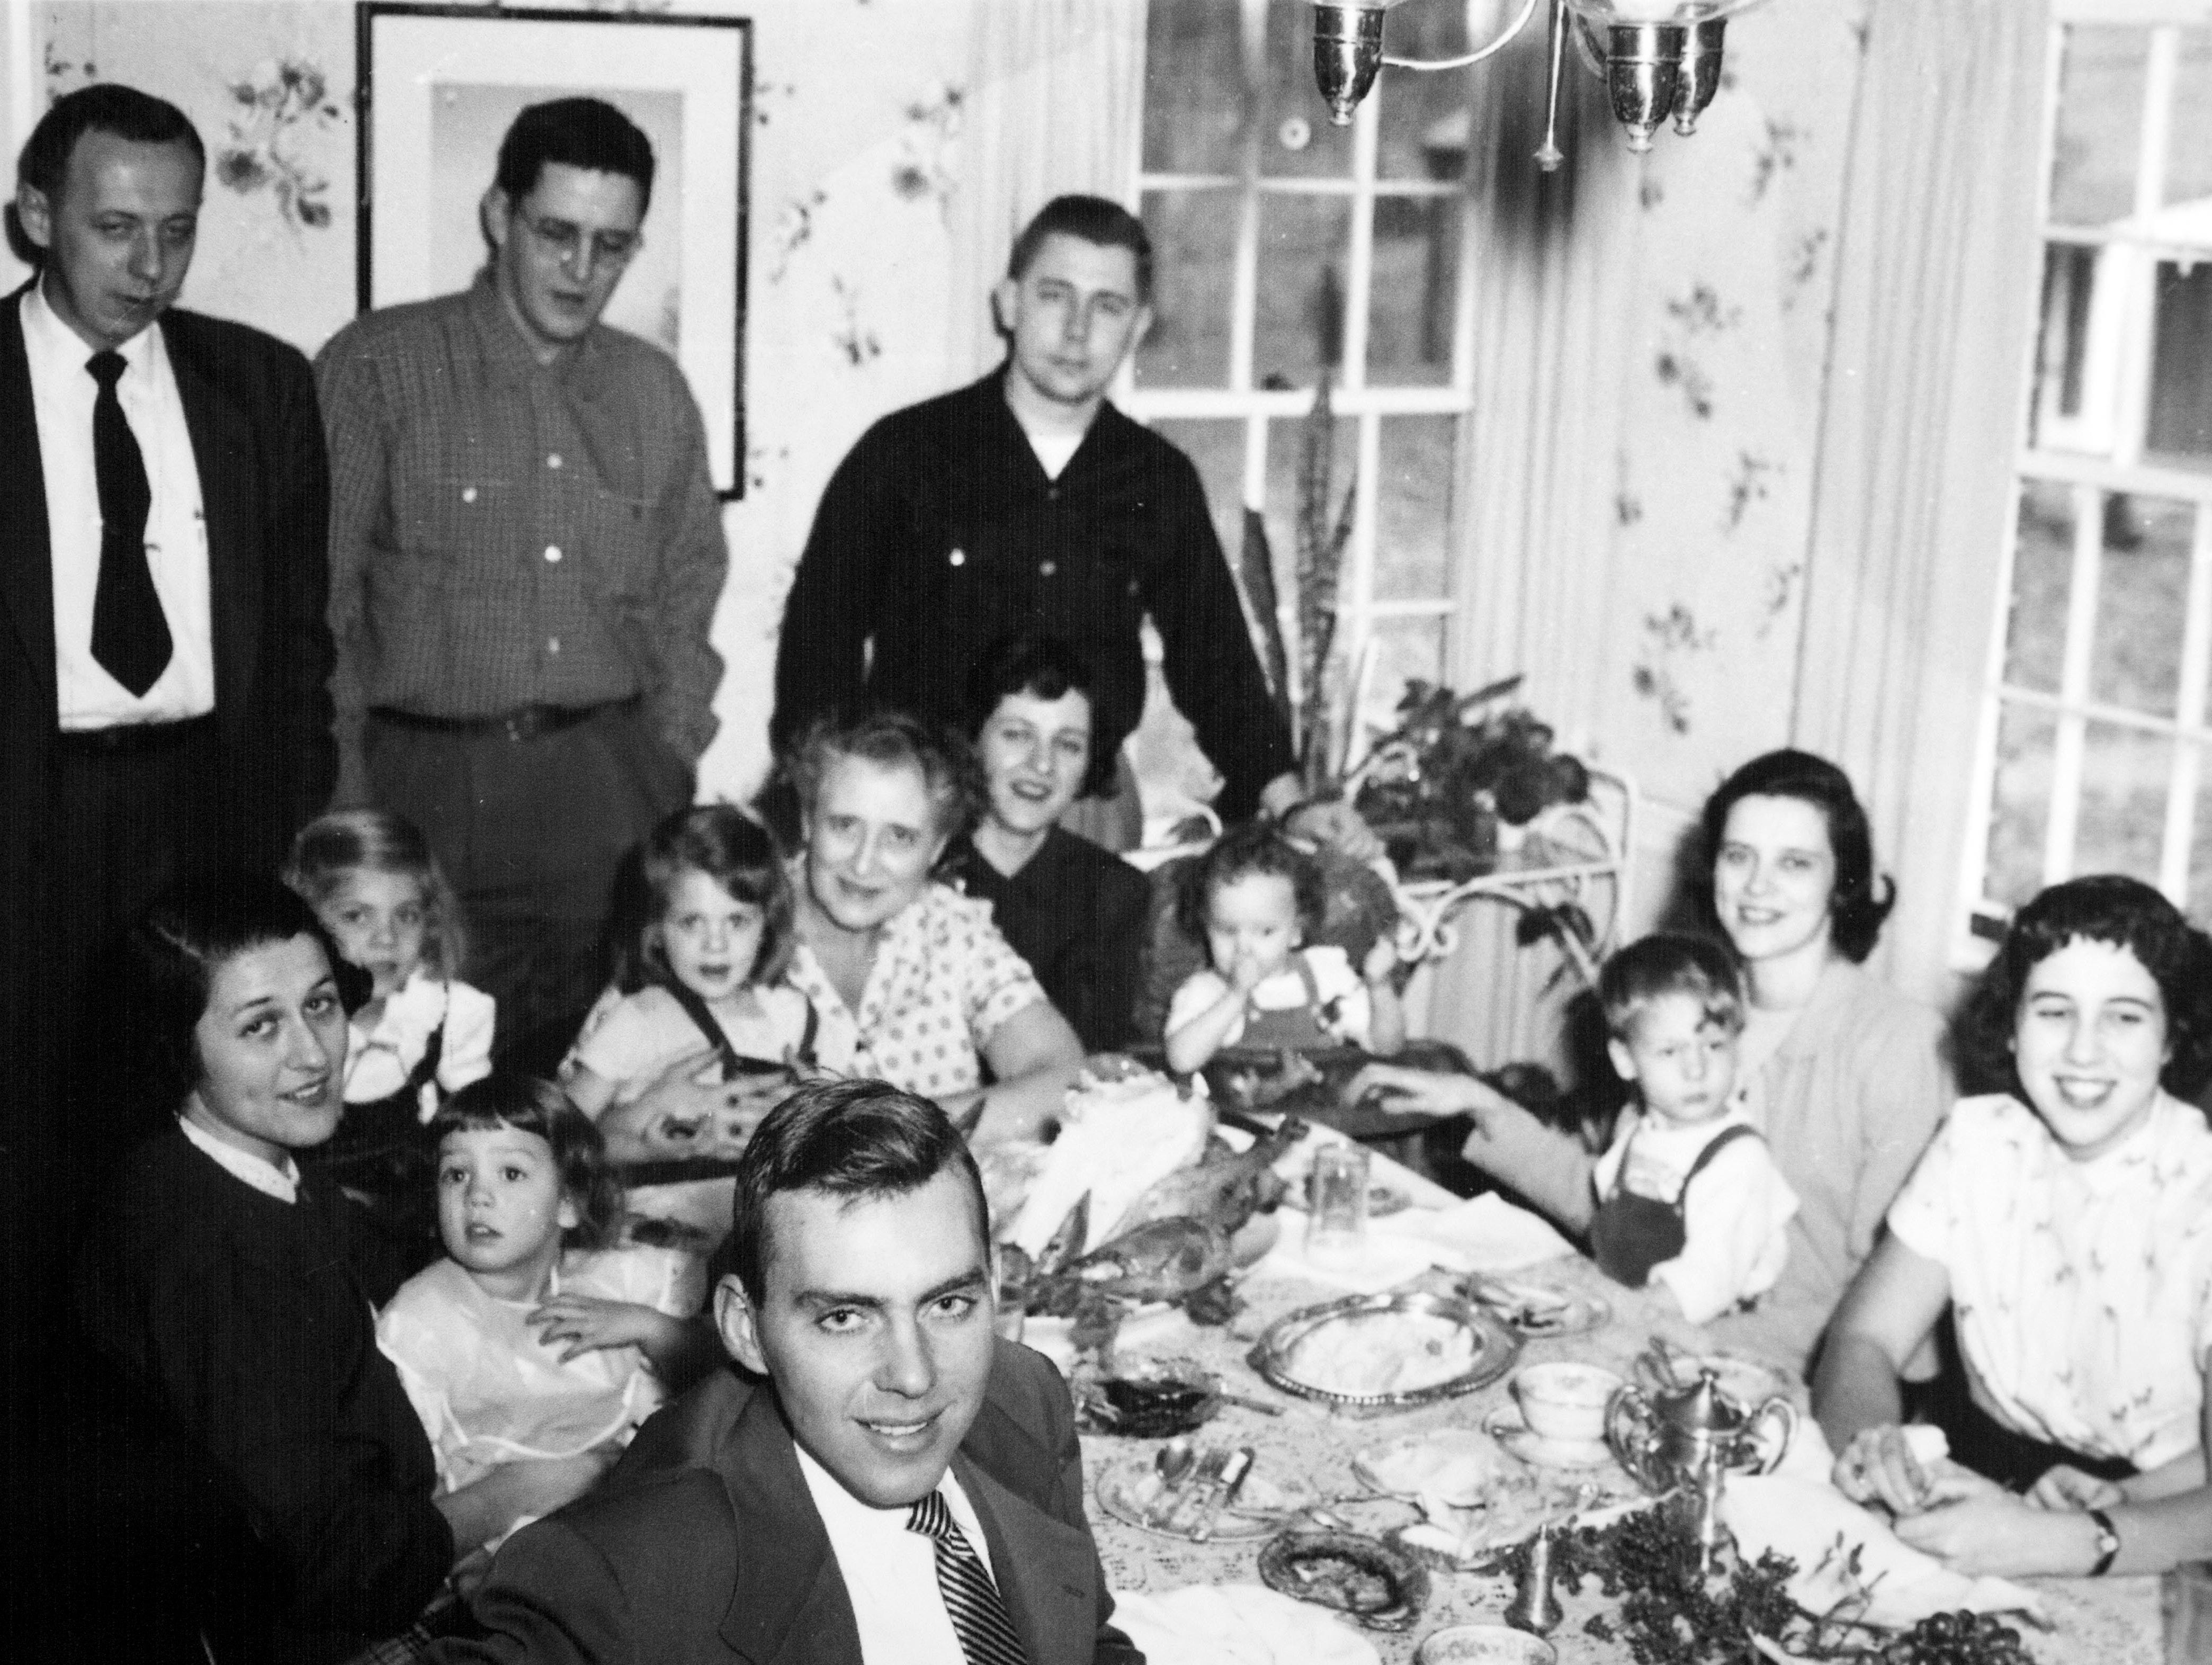 Thanksgiving in the Willard home in 1954.